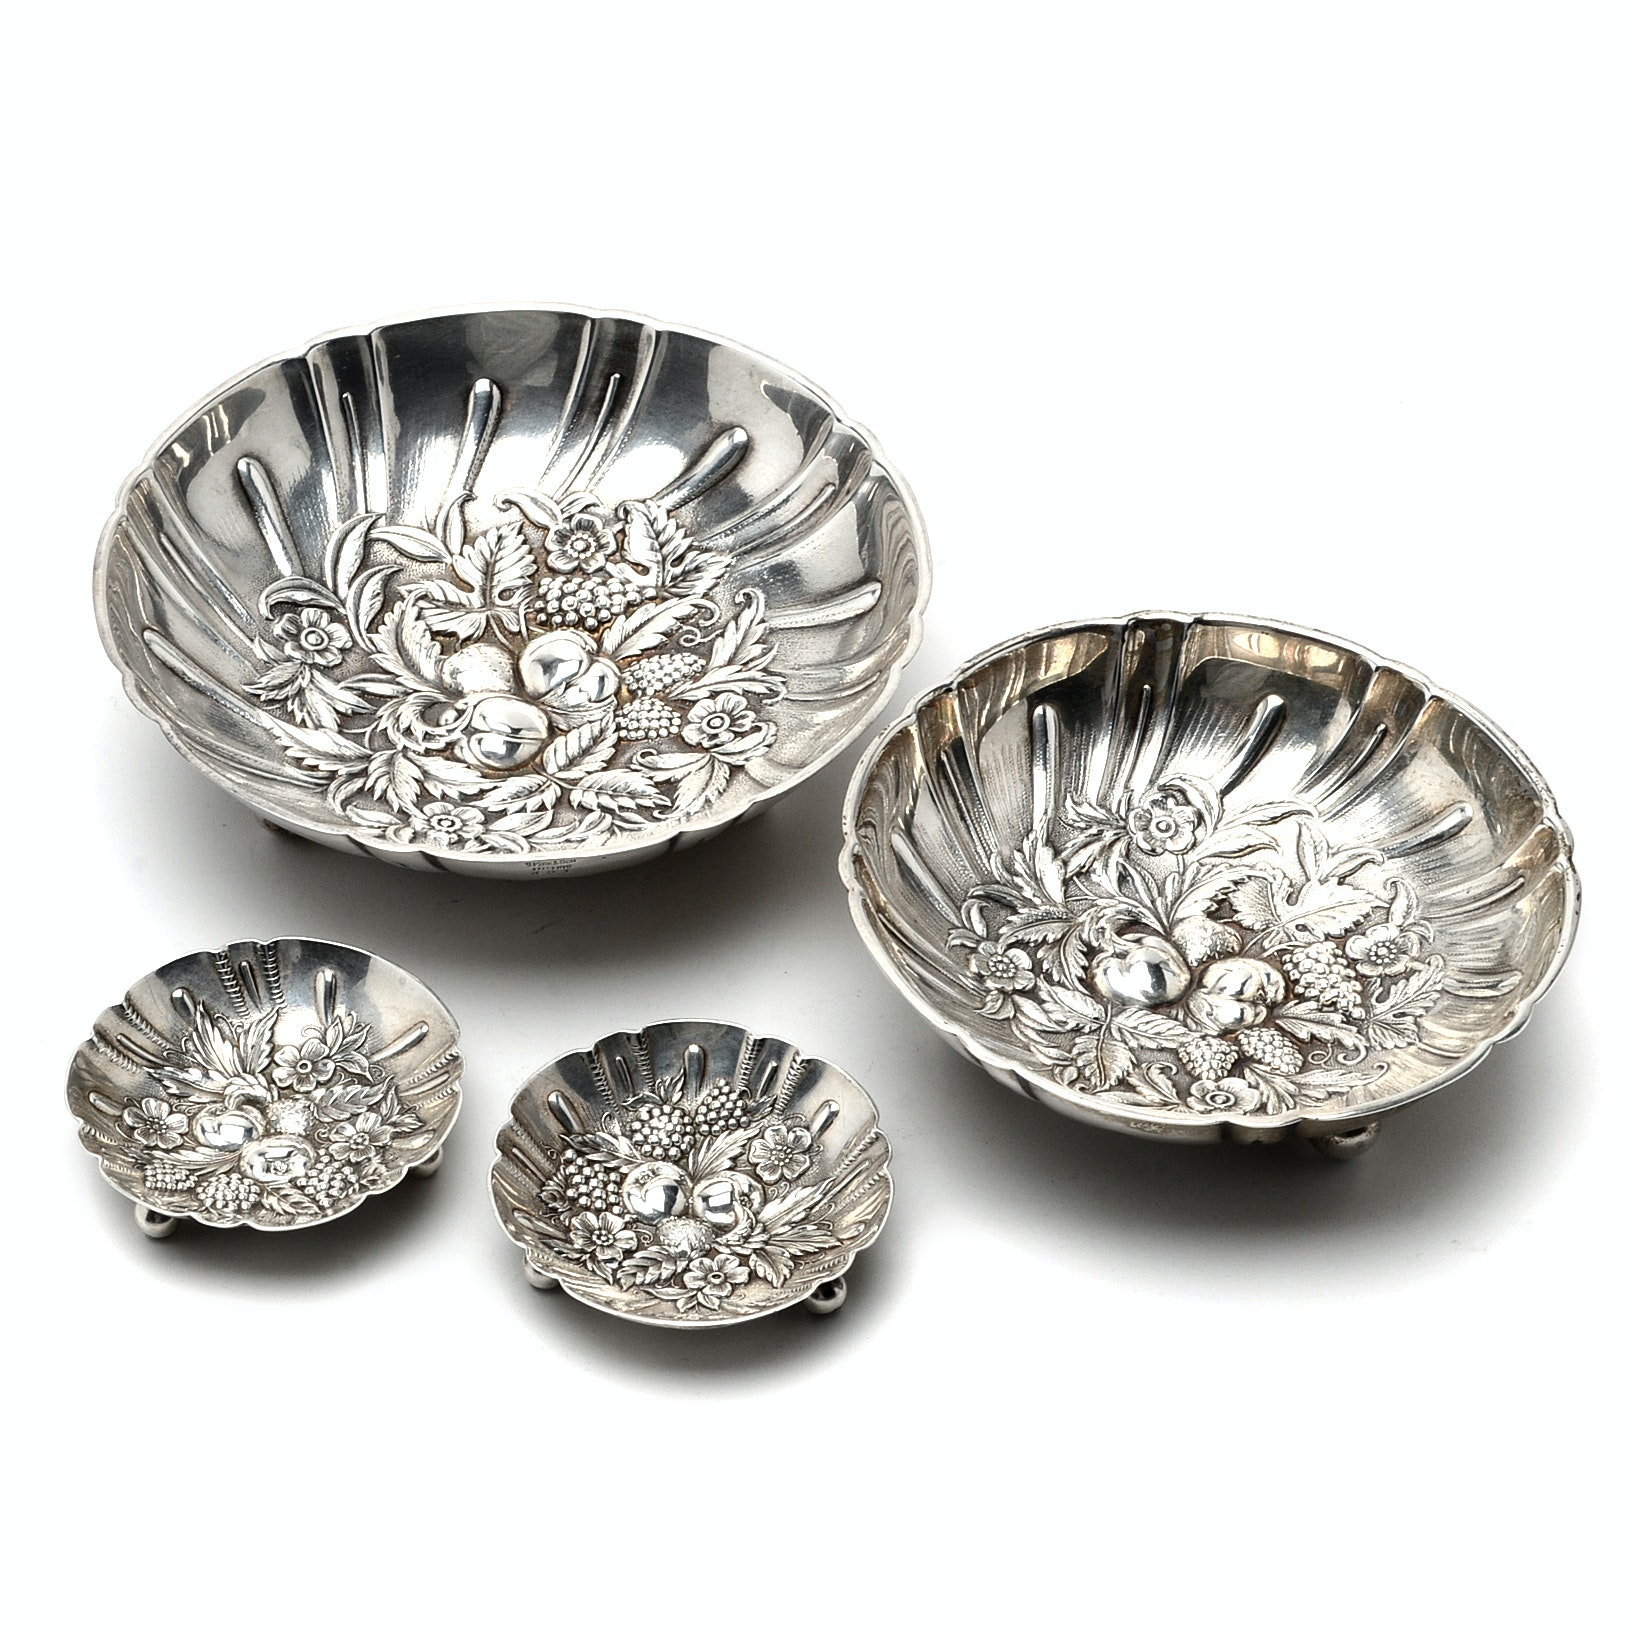 S. Kirk & Son Sterling Silver Repoussé Footed Nut Bowls